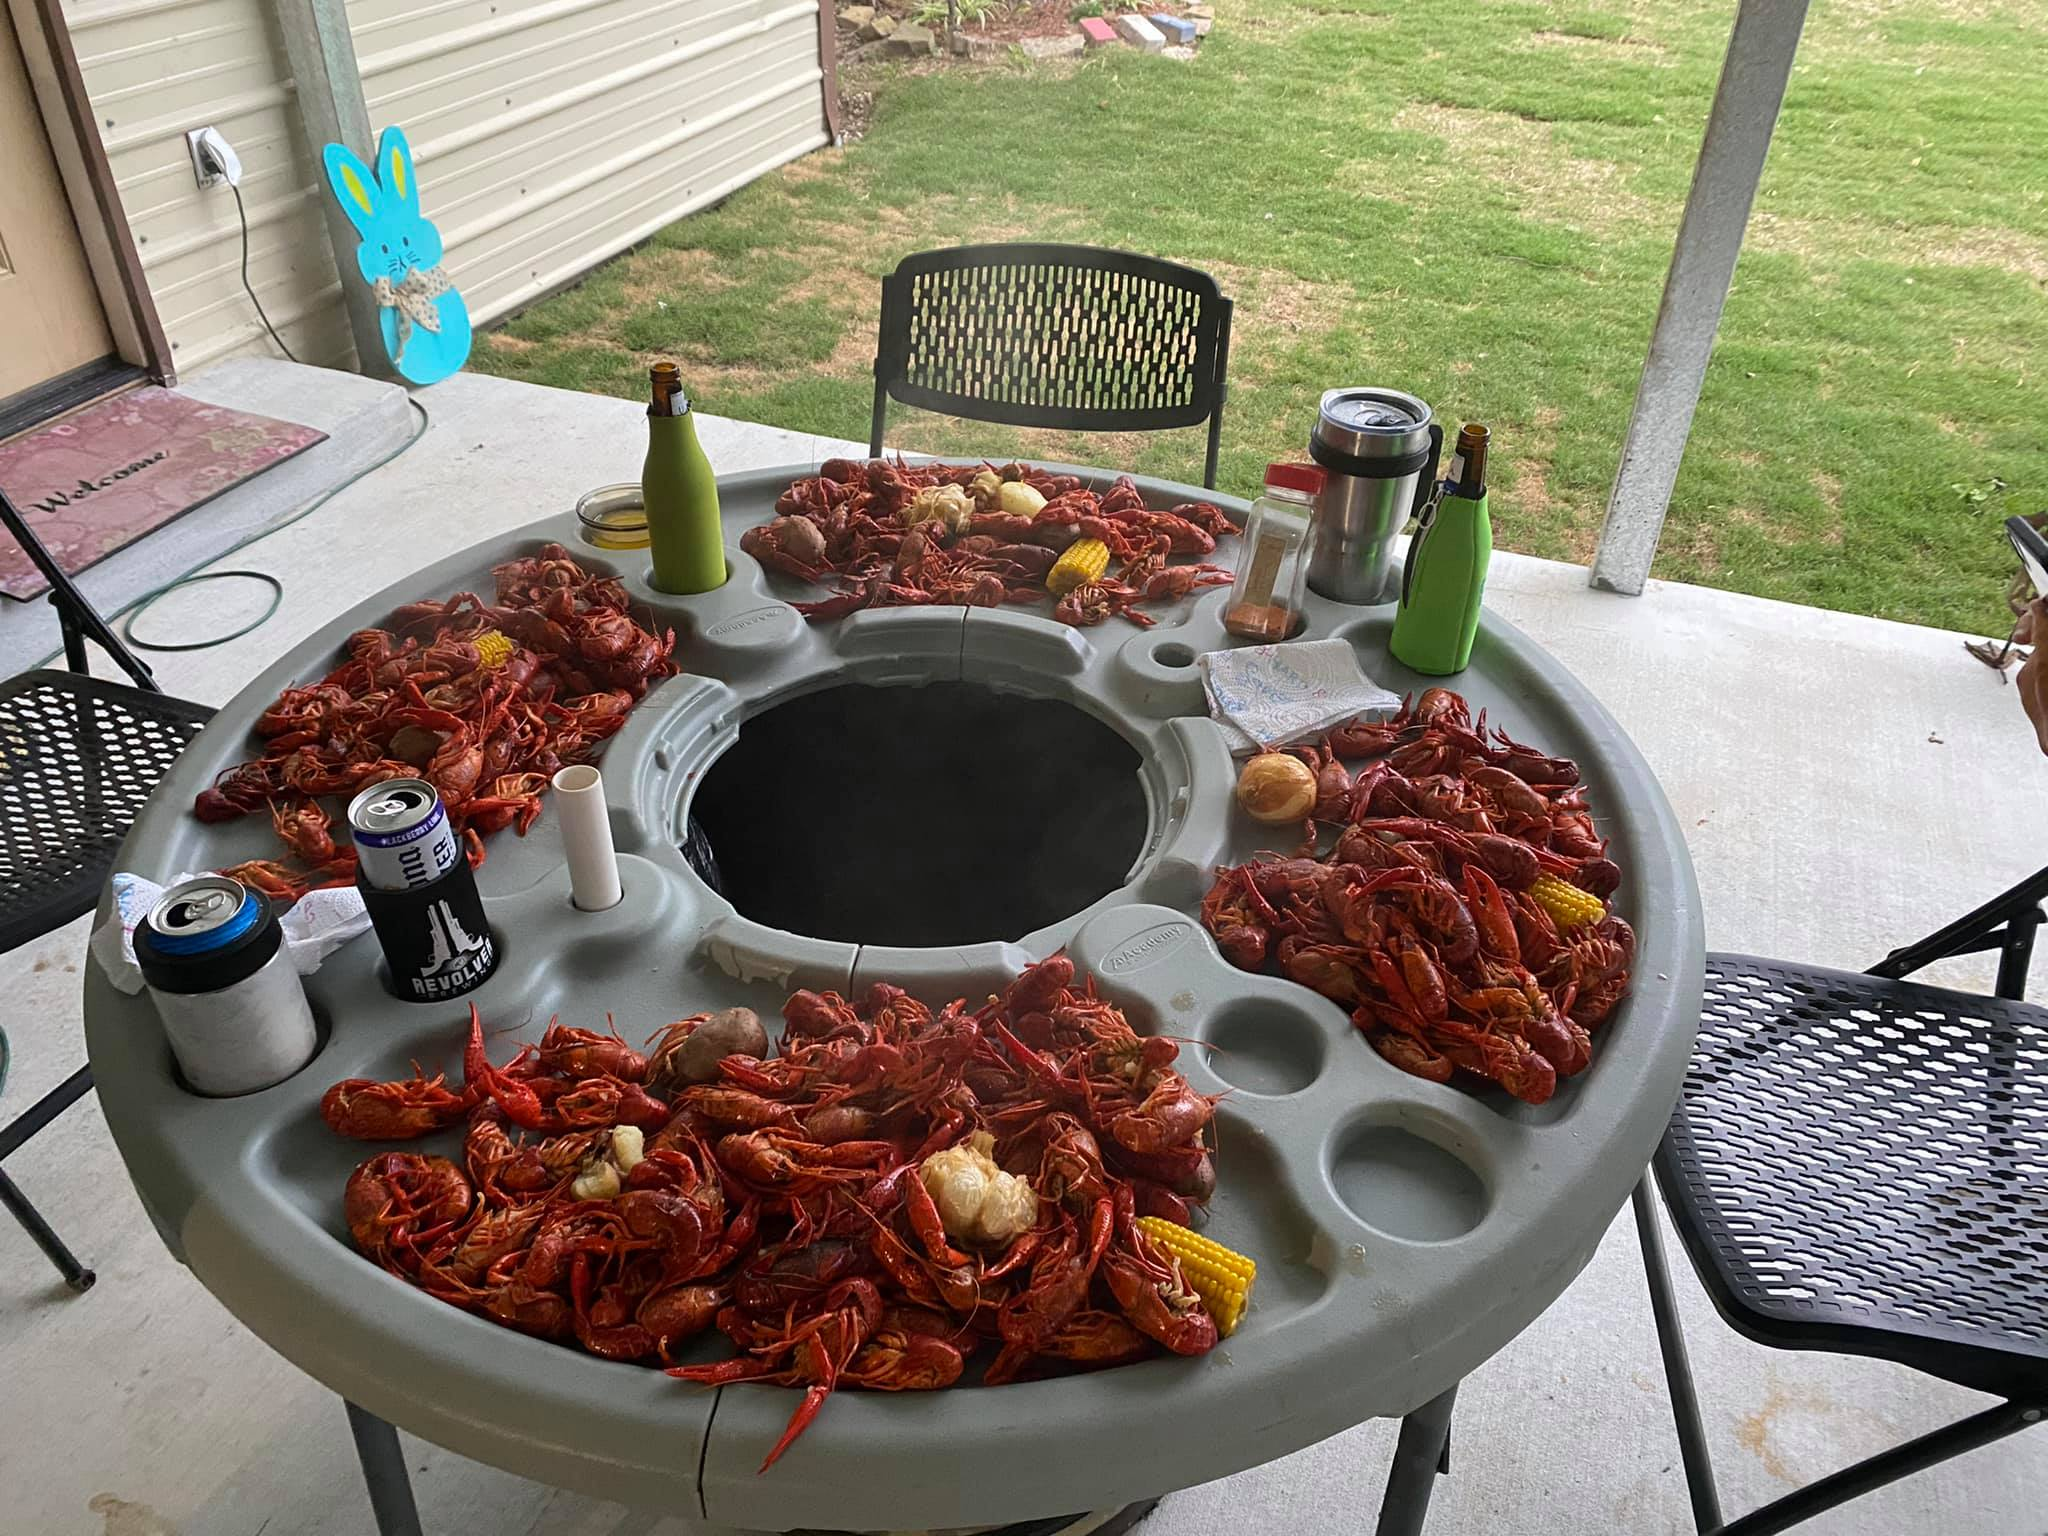 Louisiana back yard Crawfish boil